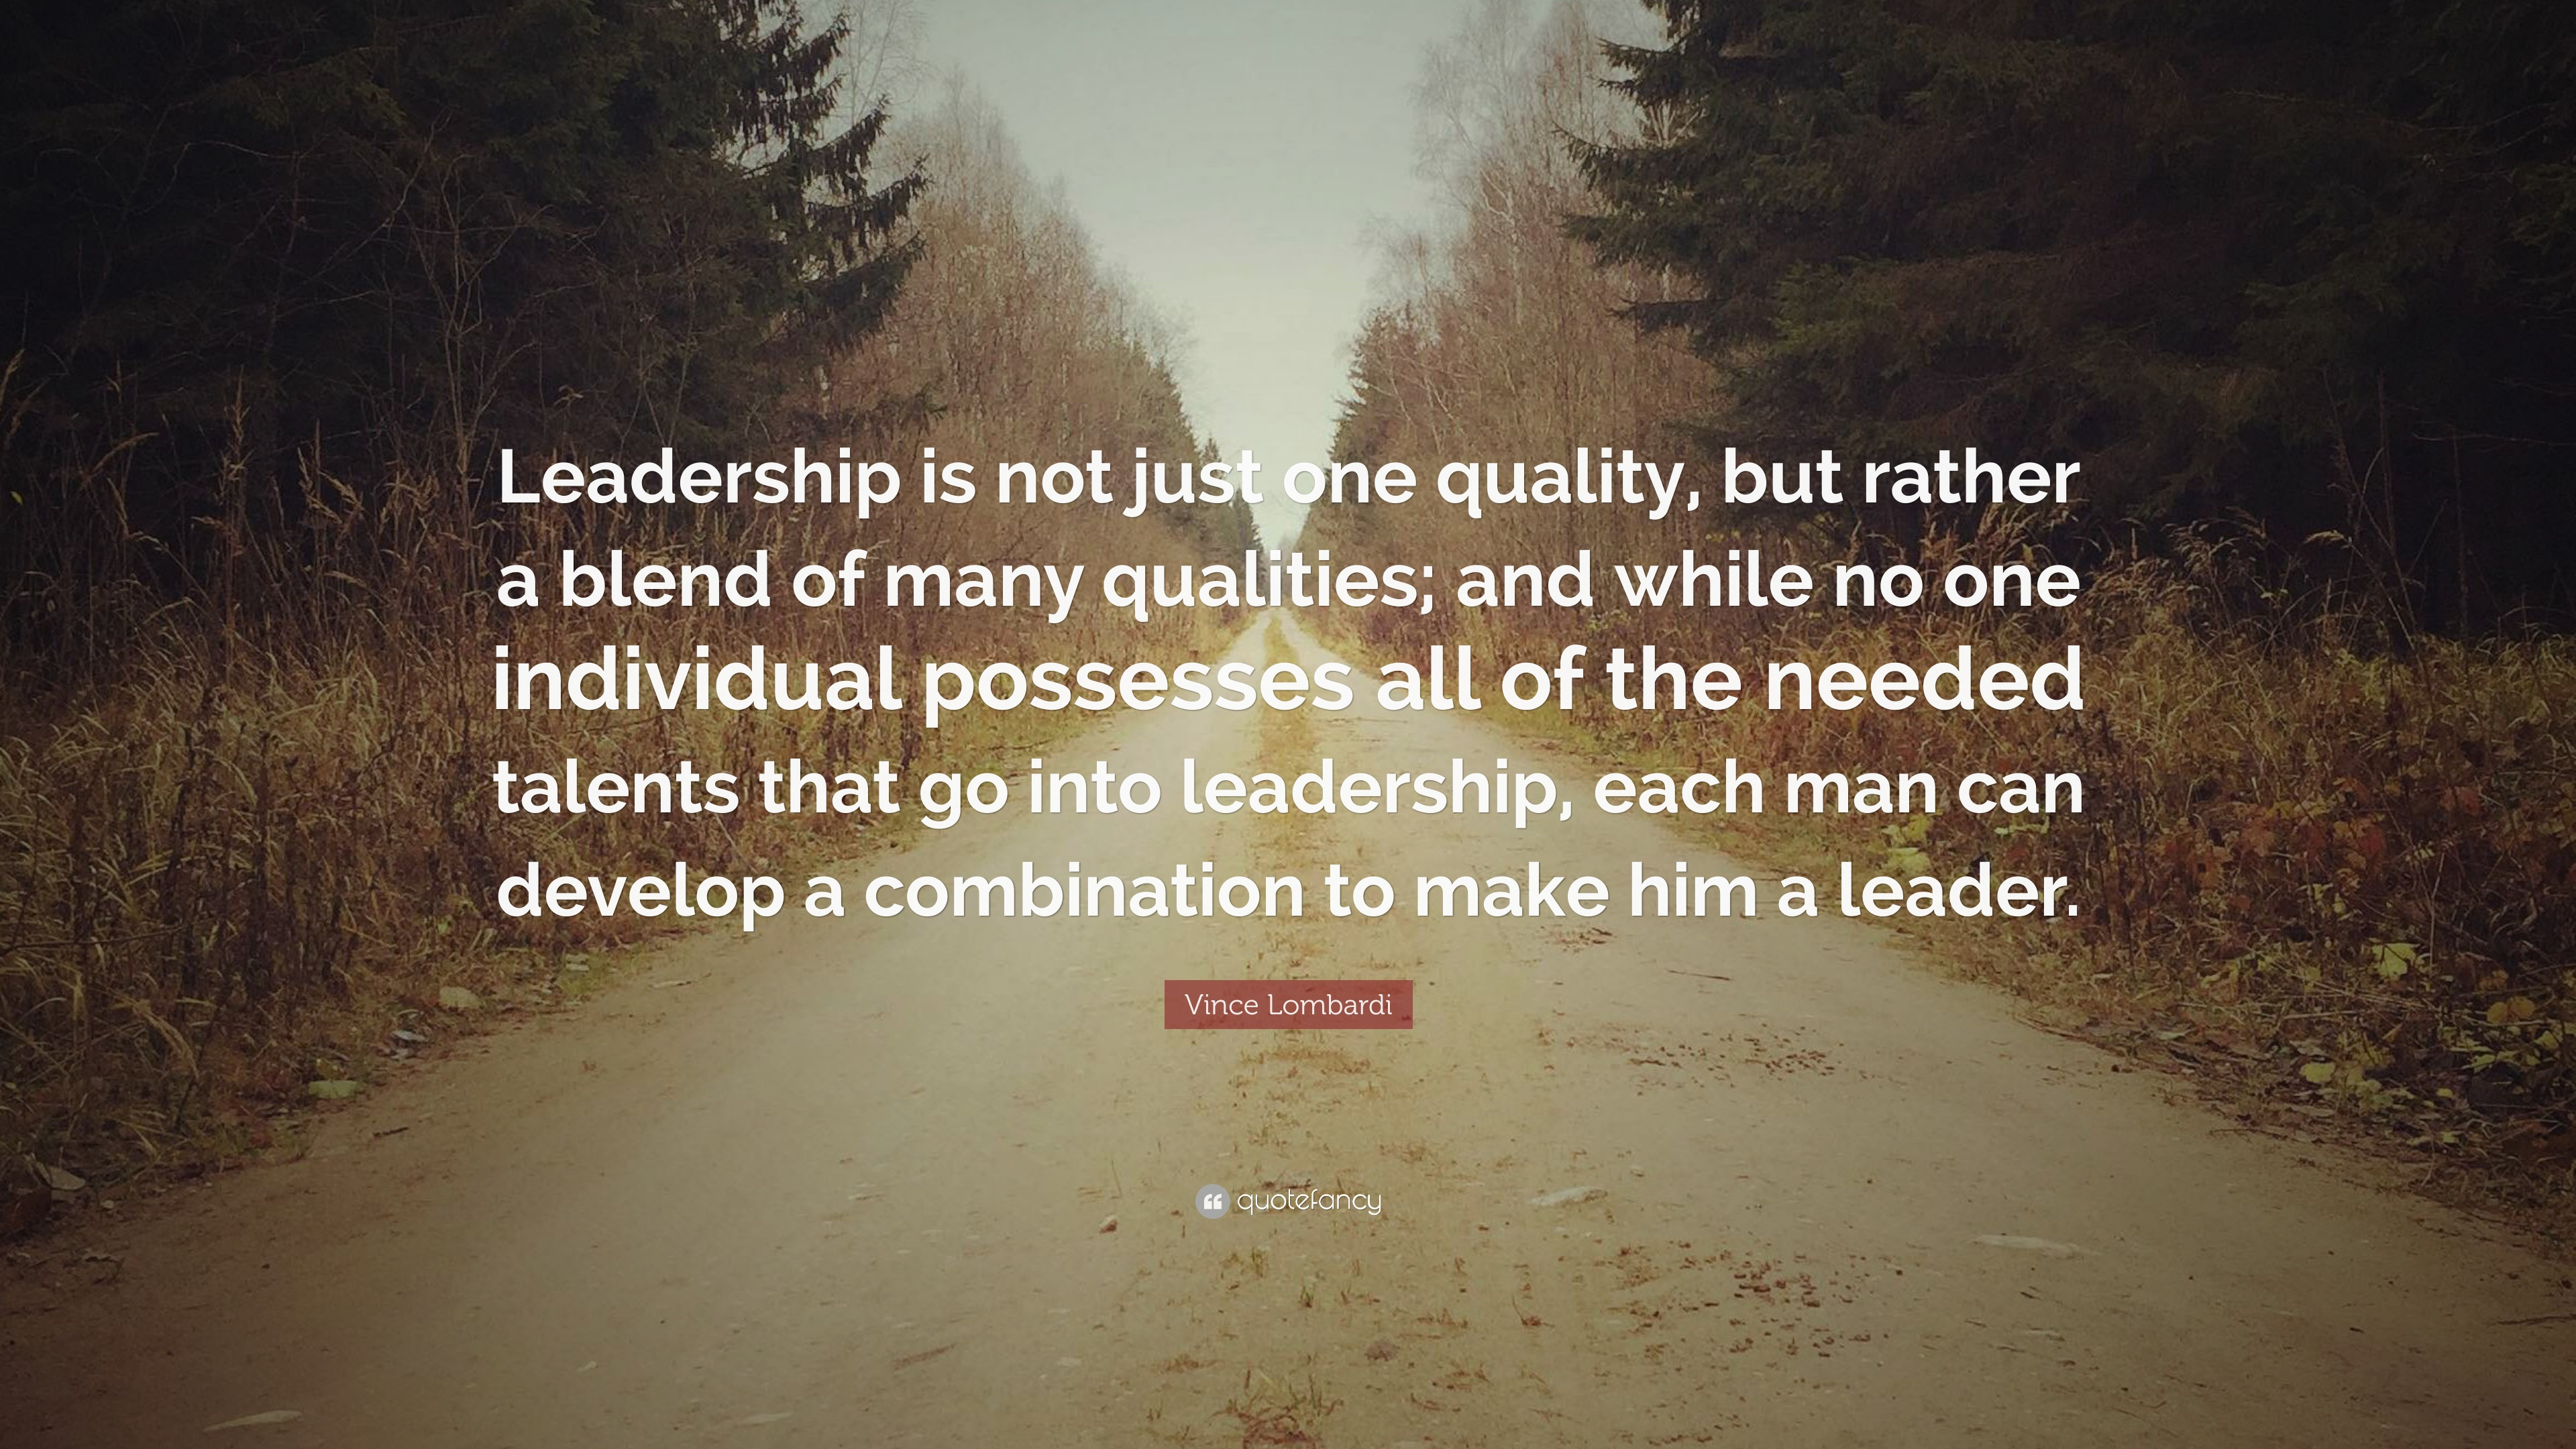 """Vince Lombardi Leadership Quotes  Vince Lombardi Quote """"Leadership is not just one quality"""